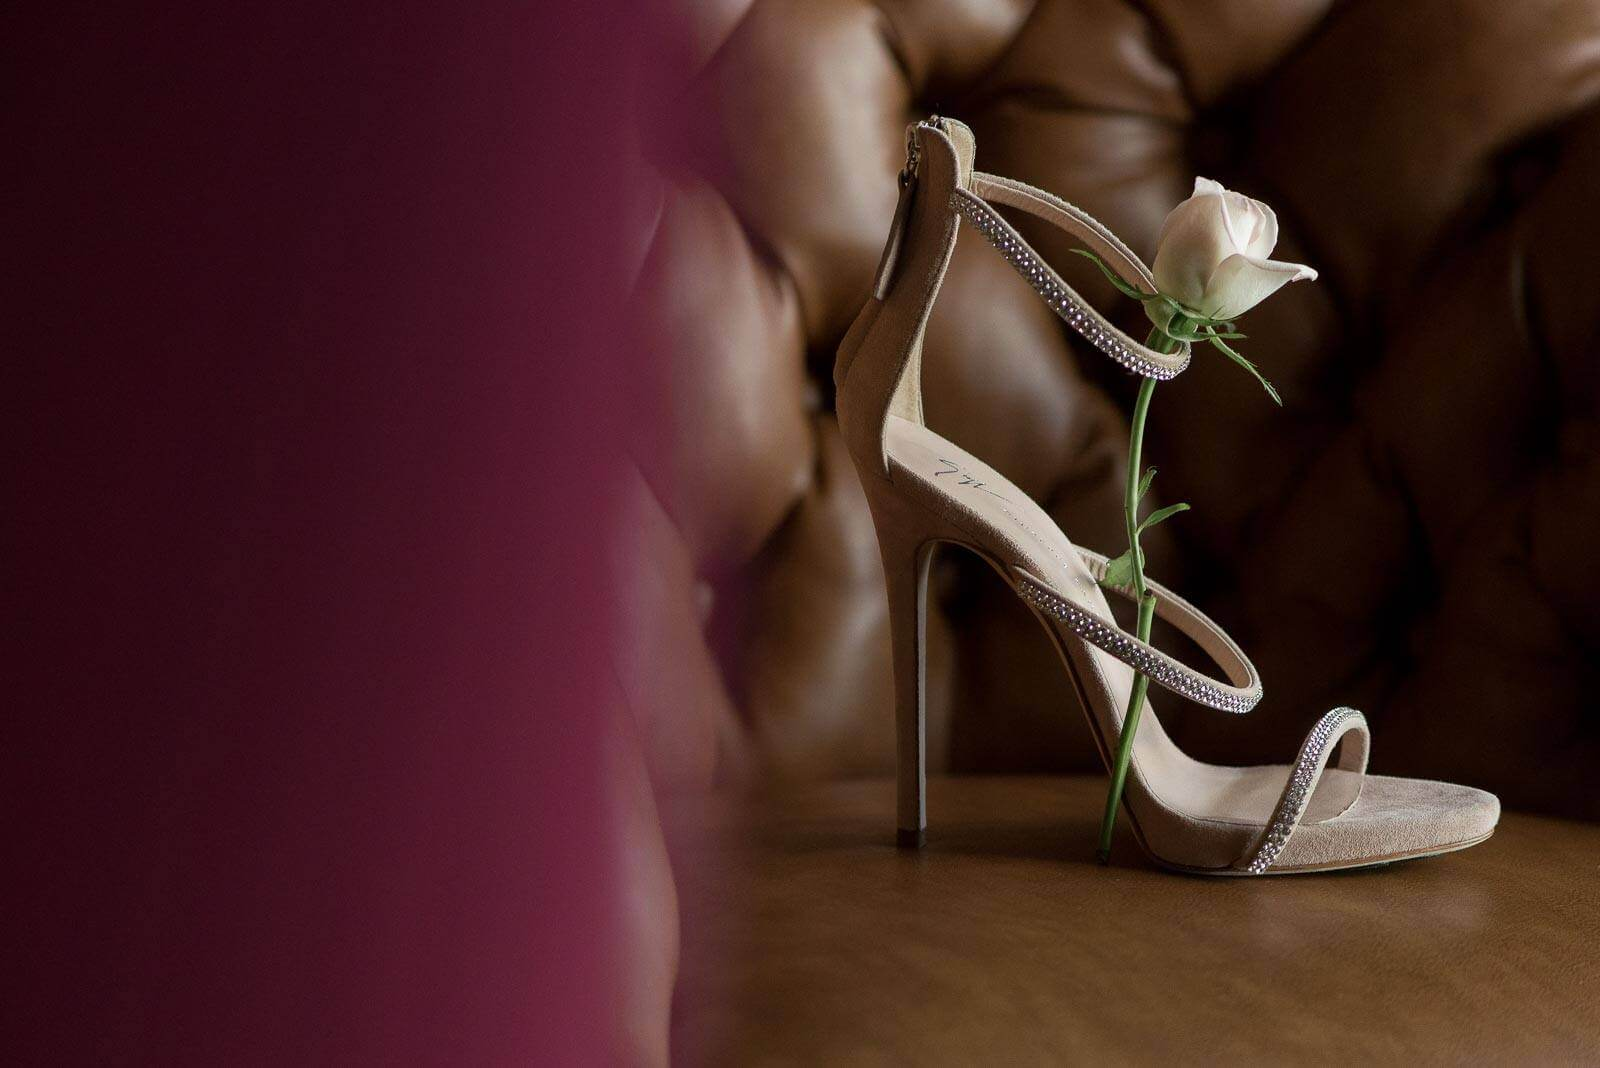 Bride Shoes with White Rose